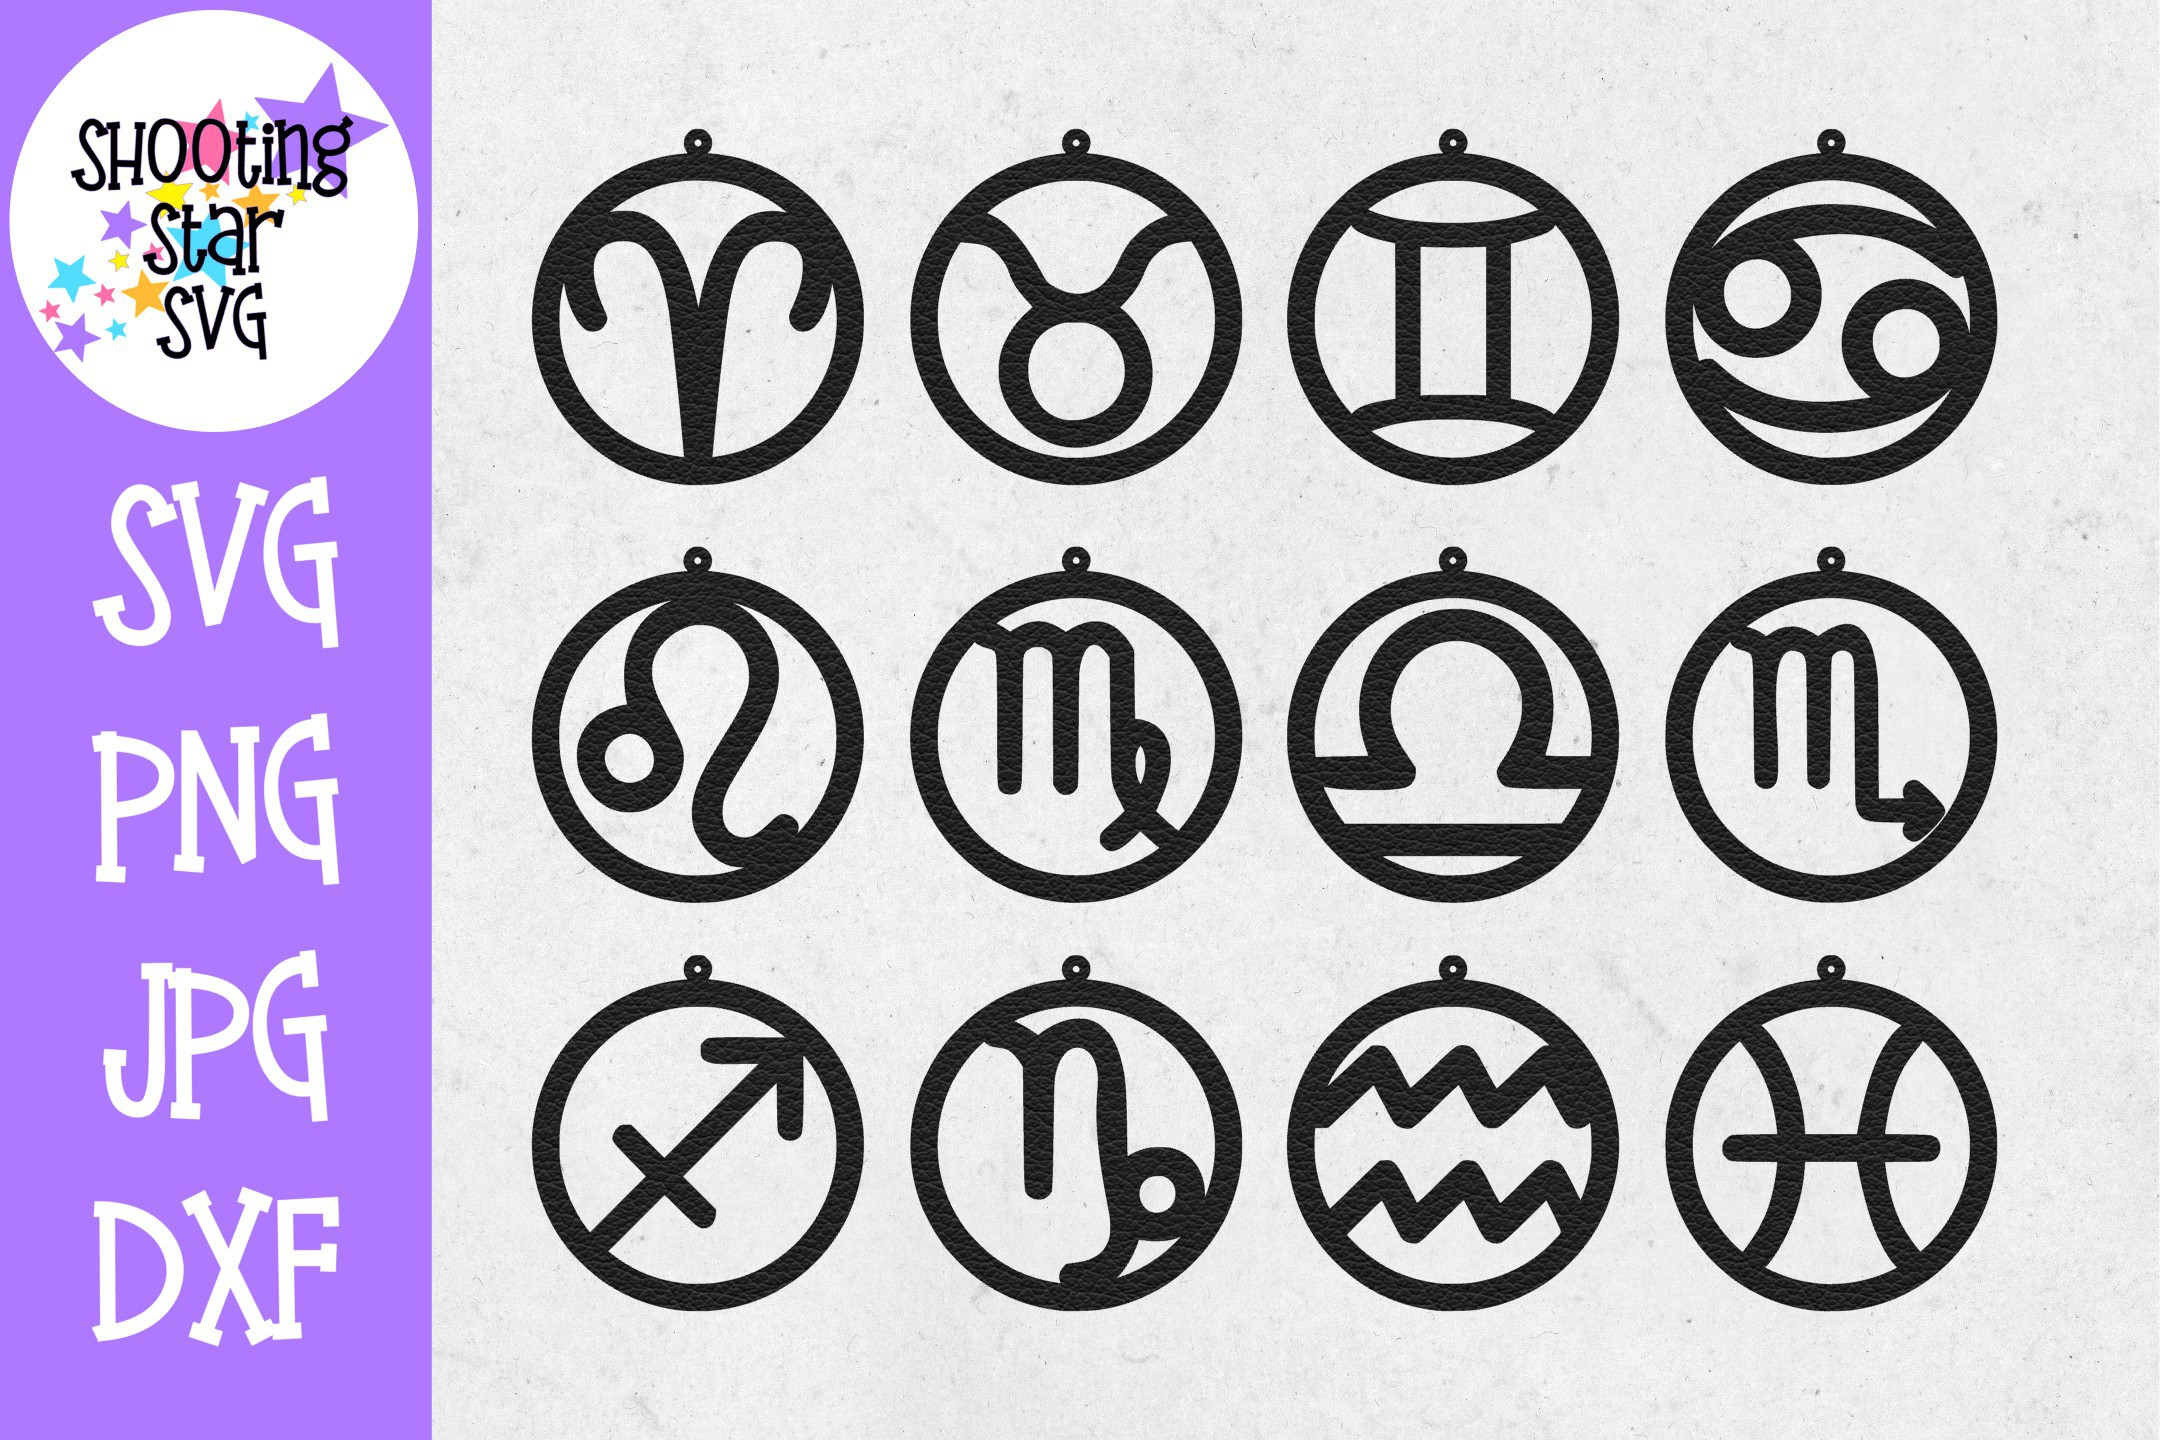 Astrology Earring SVG Template - Earring SVG - Zodiac SVG example image 1